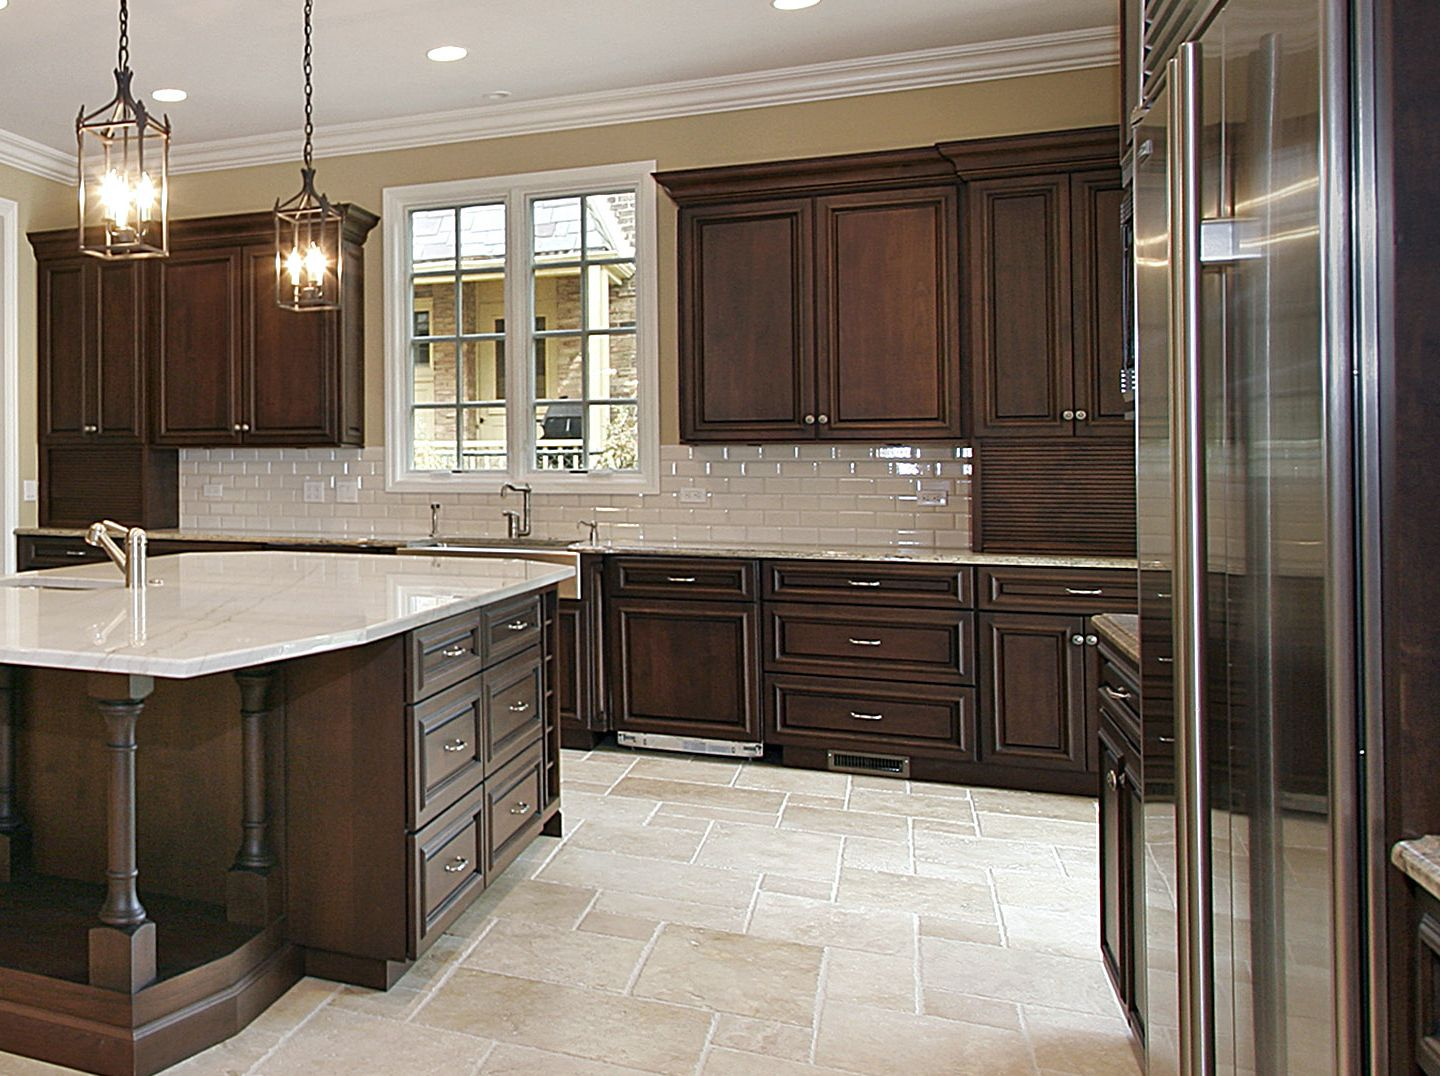 New Kitchen Dark Cabinets Classic Dark Cherry Kitchen With Large Islandwww.prasadakitchens